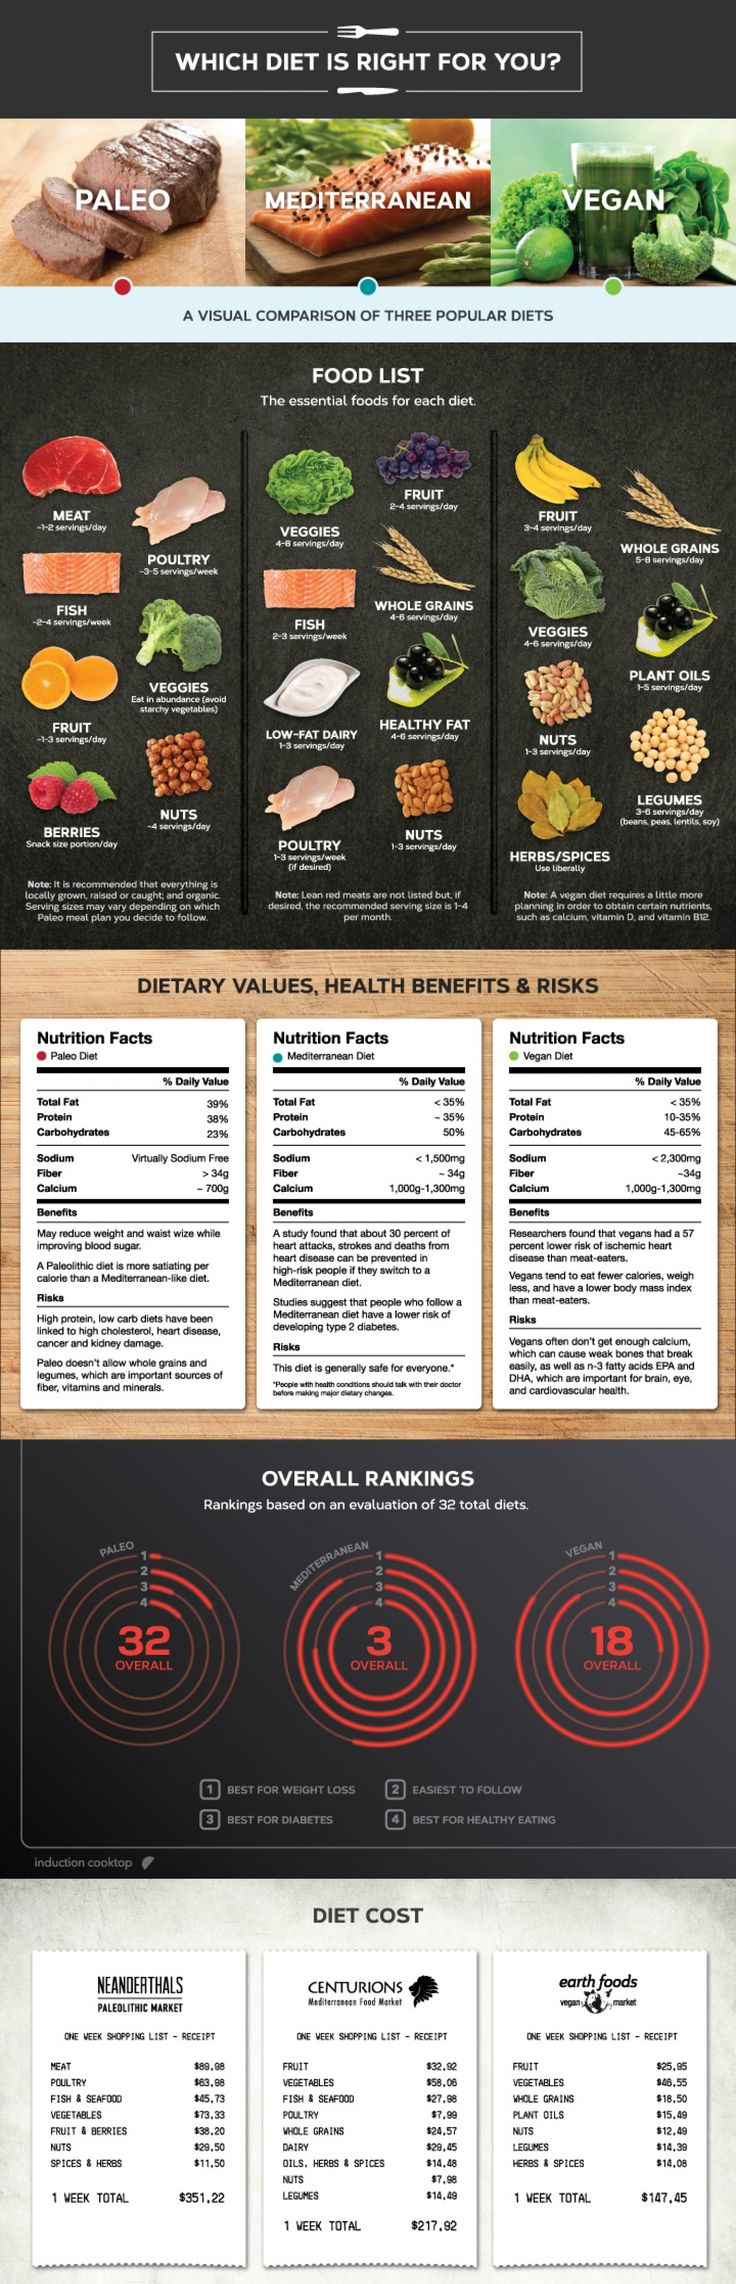 Considering starting a new Paleo or Vegan diet? Check out the rankings of 3 popular diets to choose what's best for you!